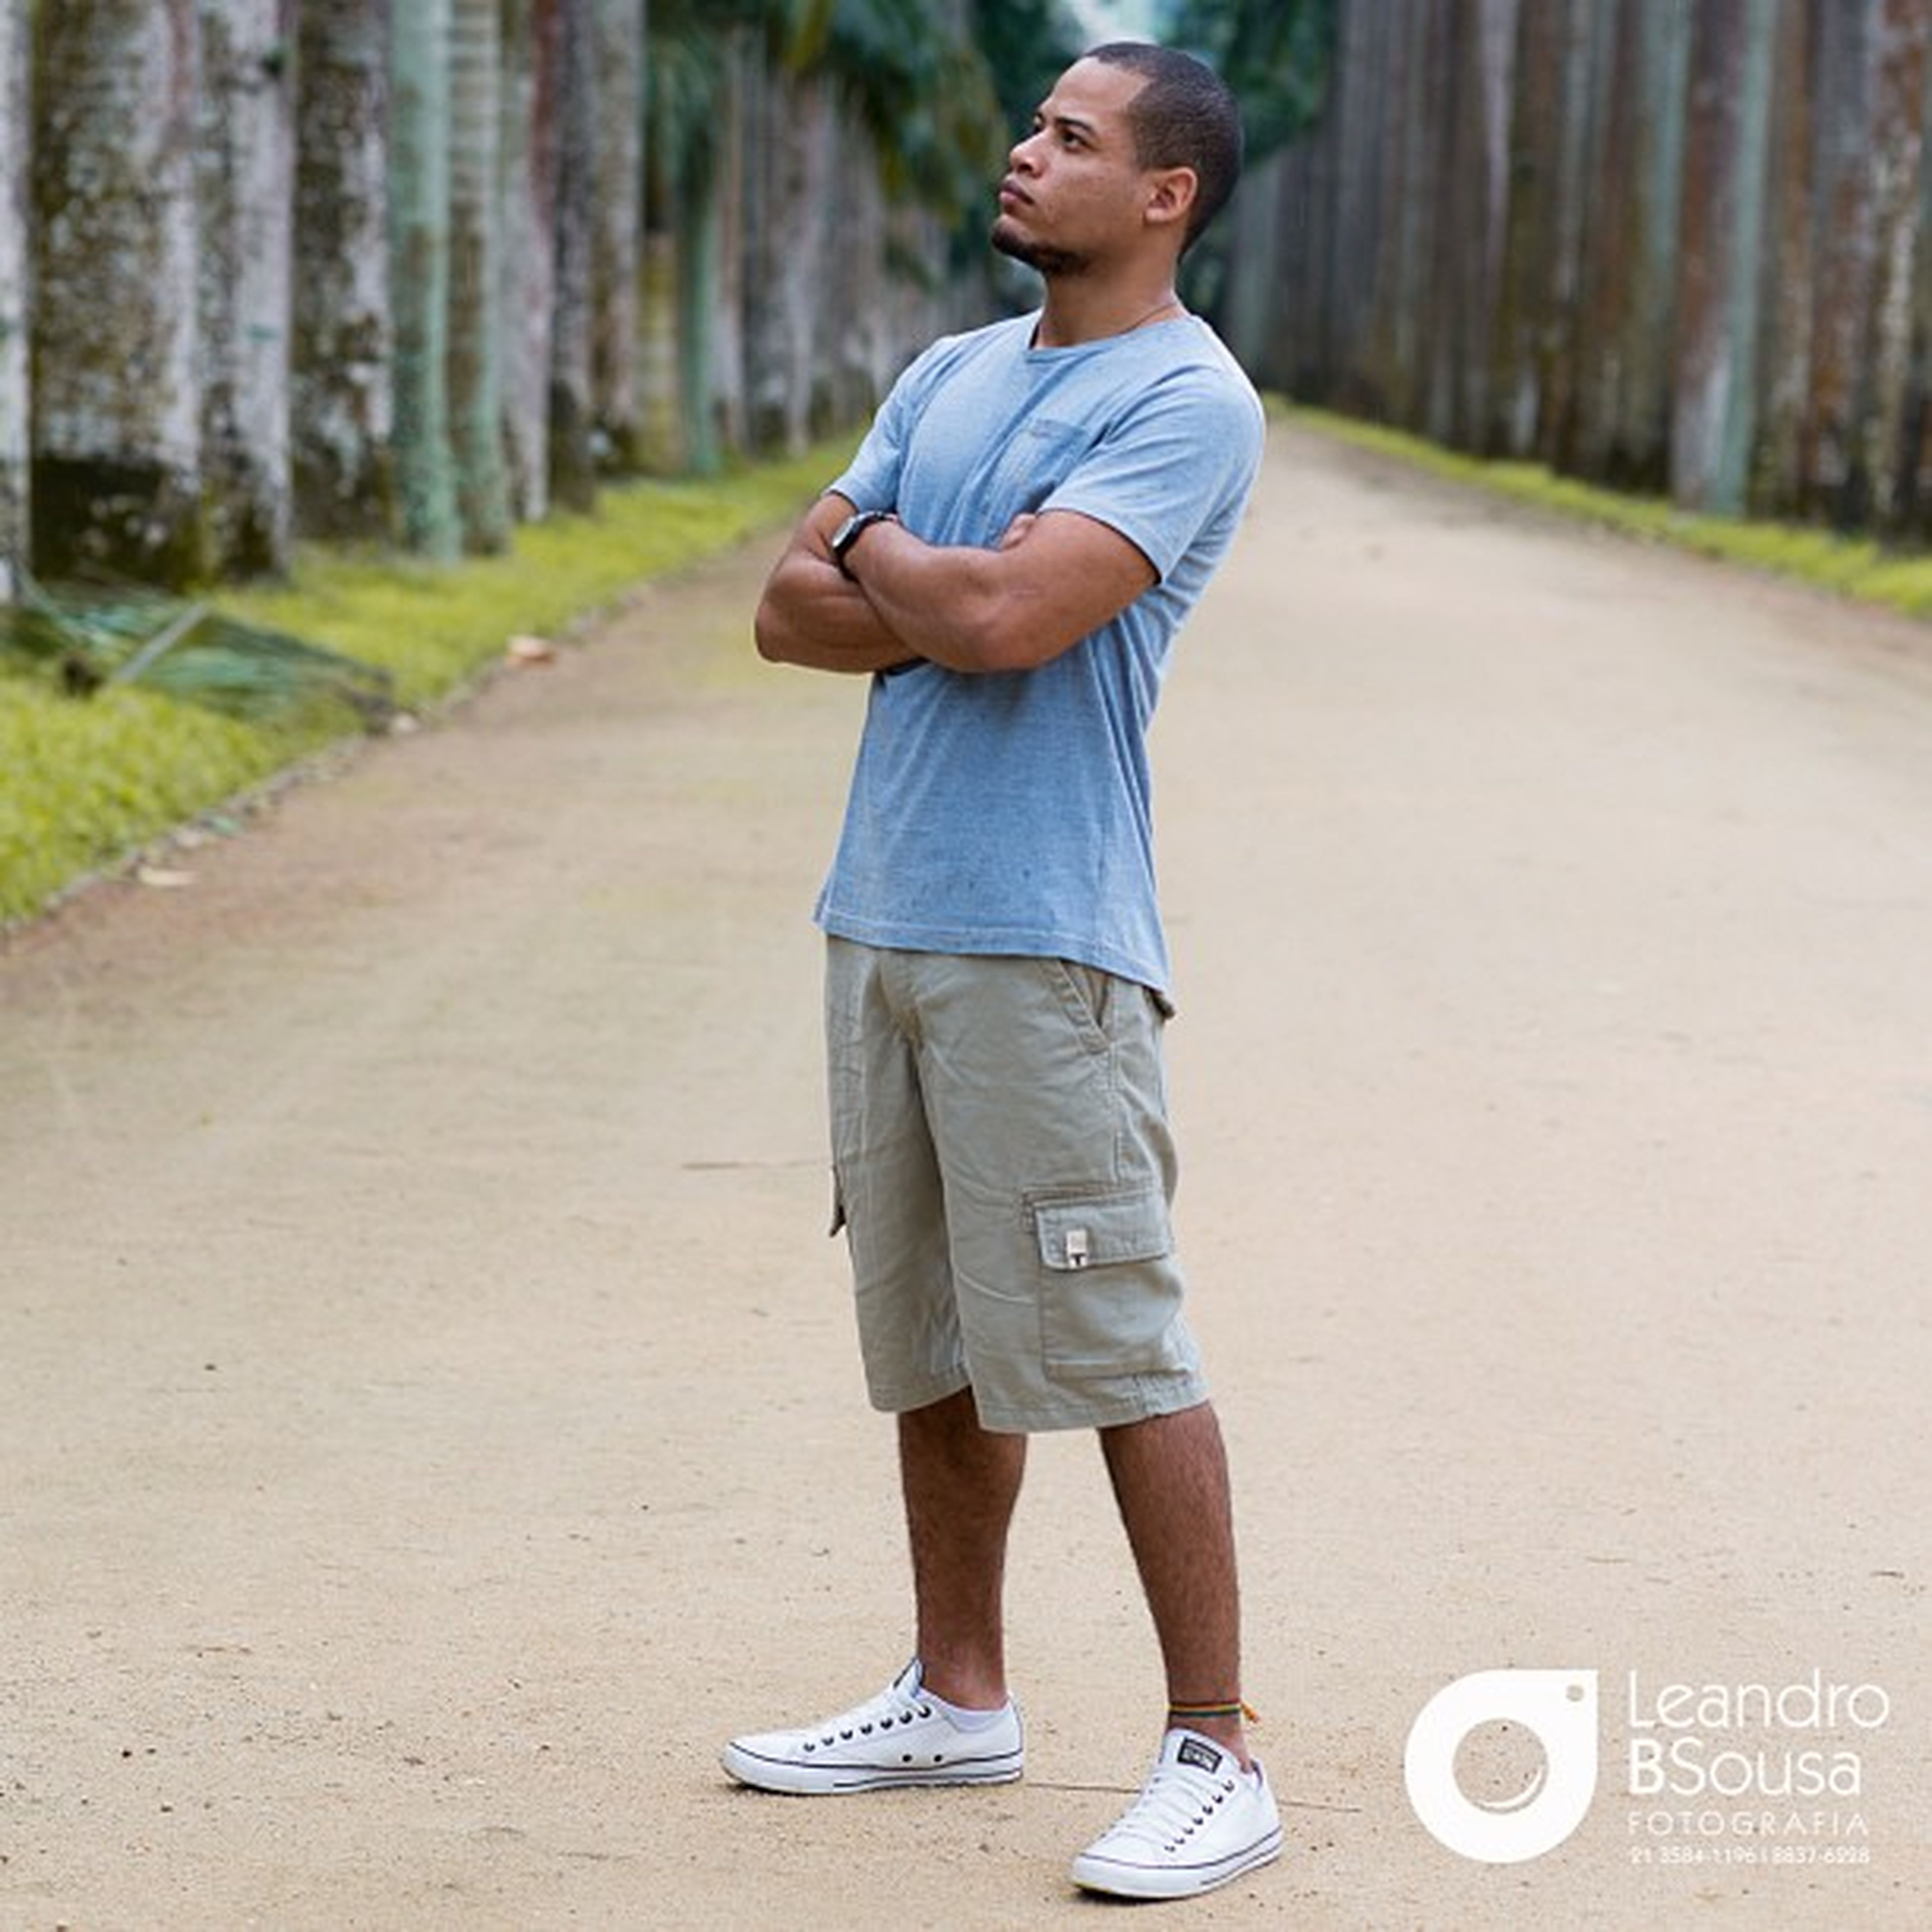 person, casual clothing, lifestyles, young adult, full length, front view, leisure activity, looking at camera, focus on foreground, standing, portrait, young men, smiling, street, road, day, outdoors